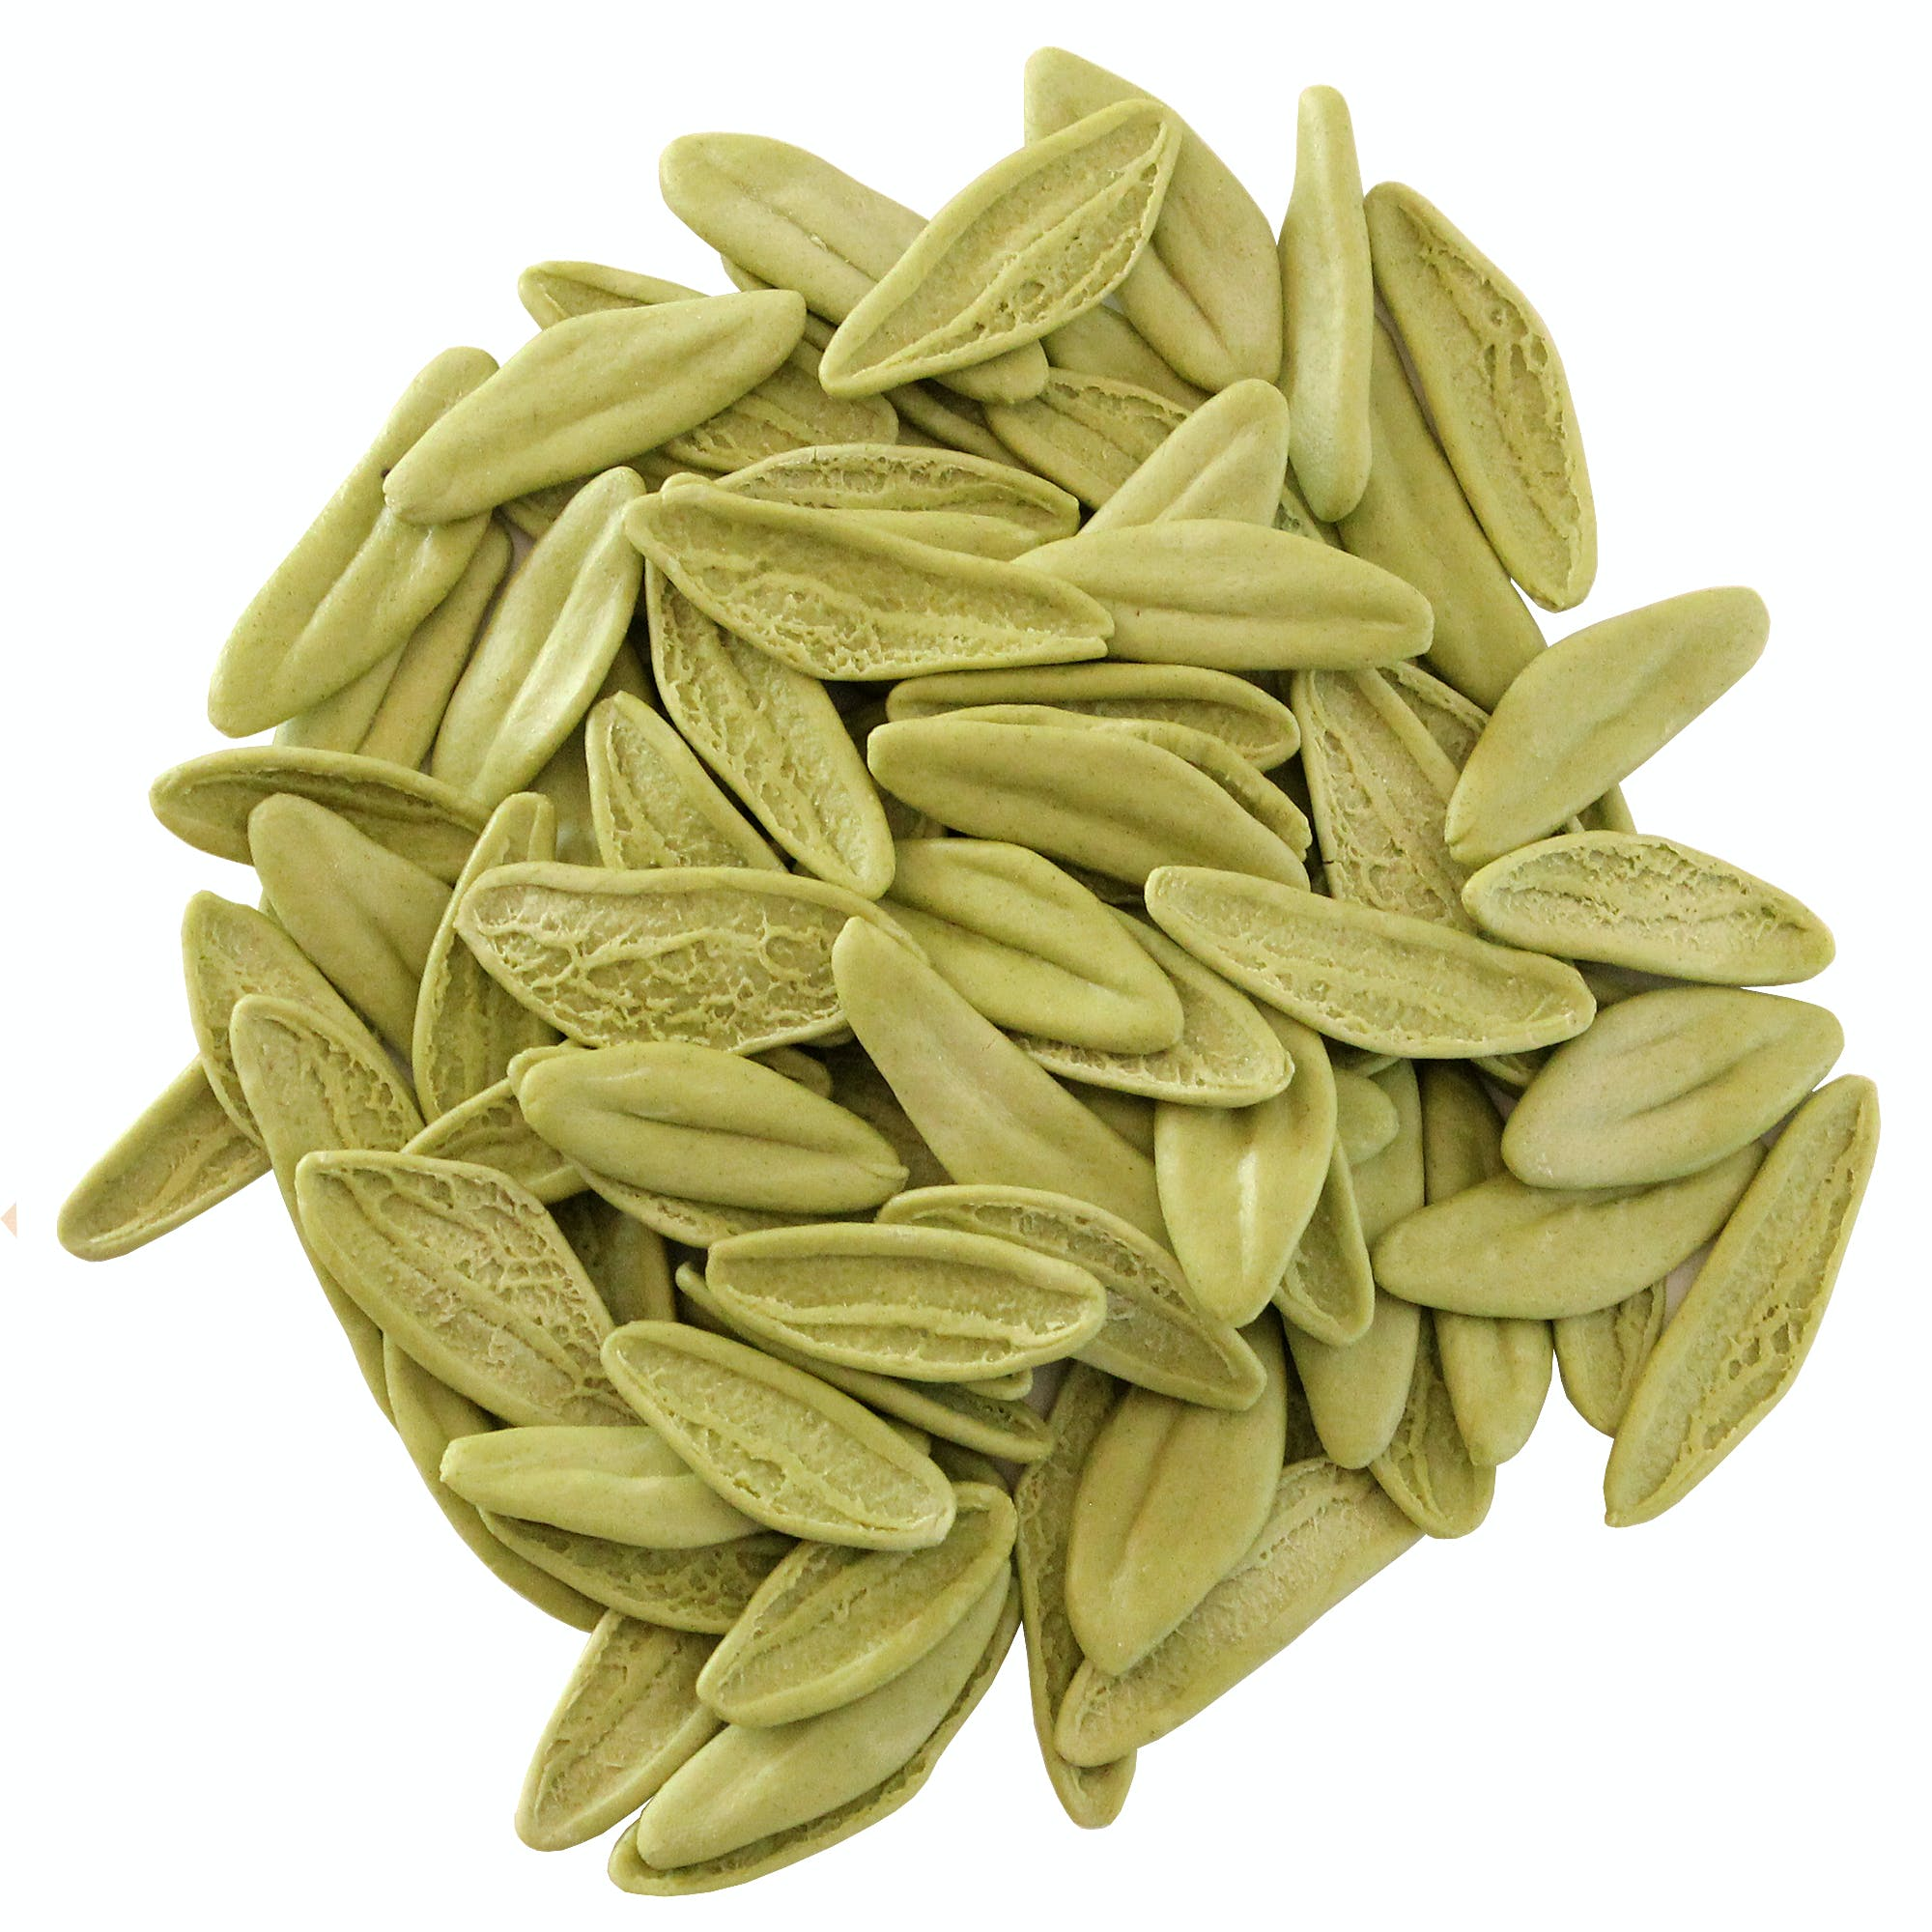 Green Olive Leaf Pasta (Foglie d'Oliva) Pasta sold by M5 Corporation